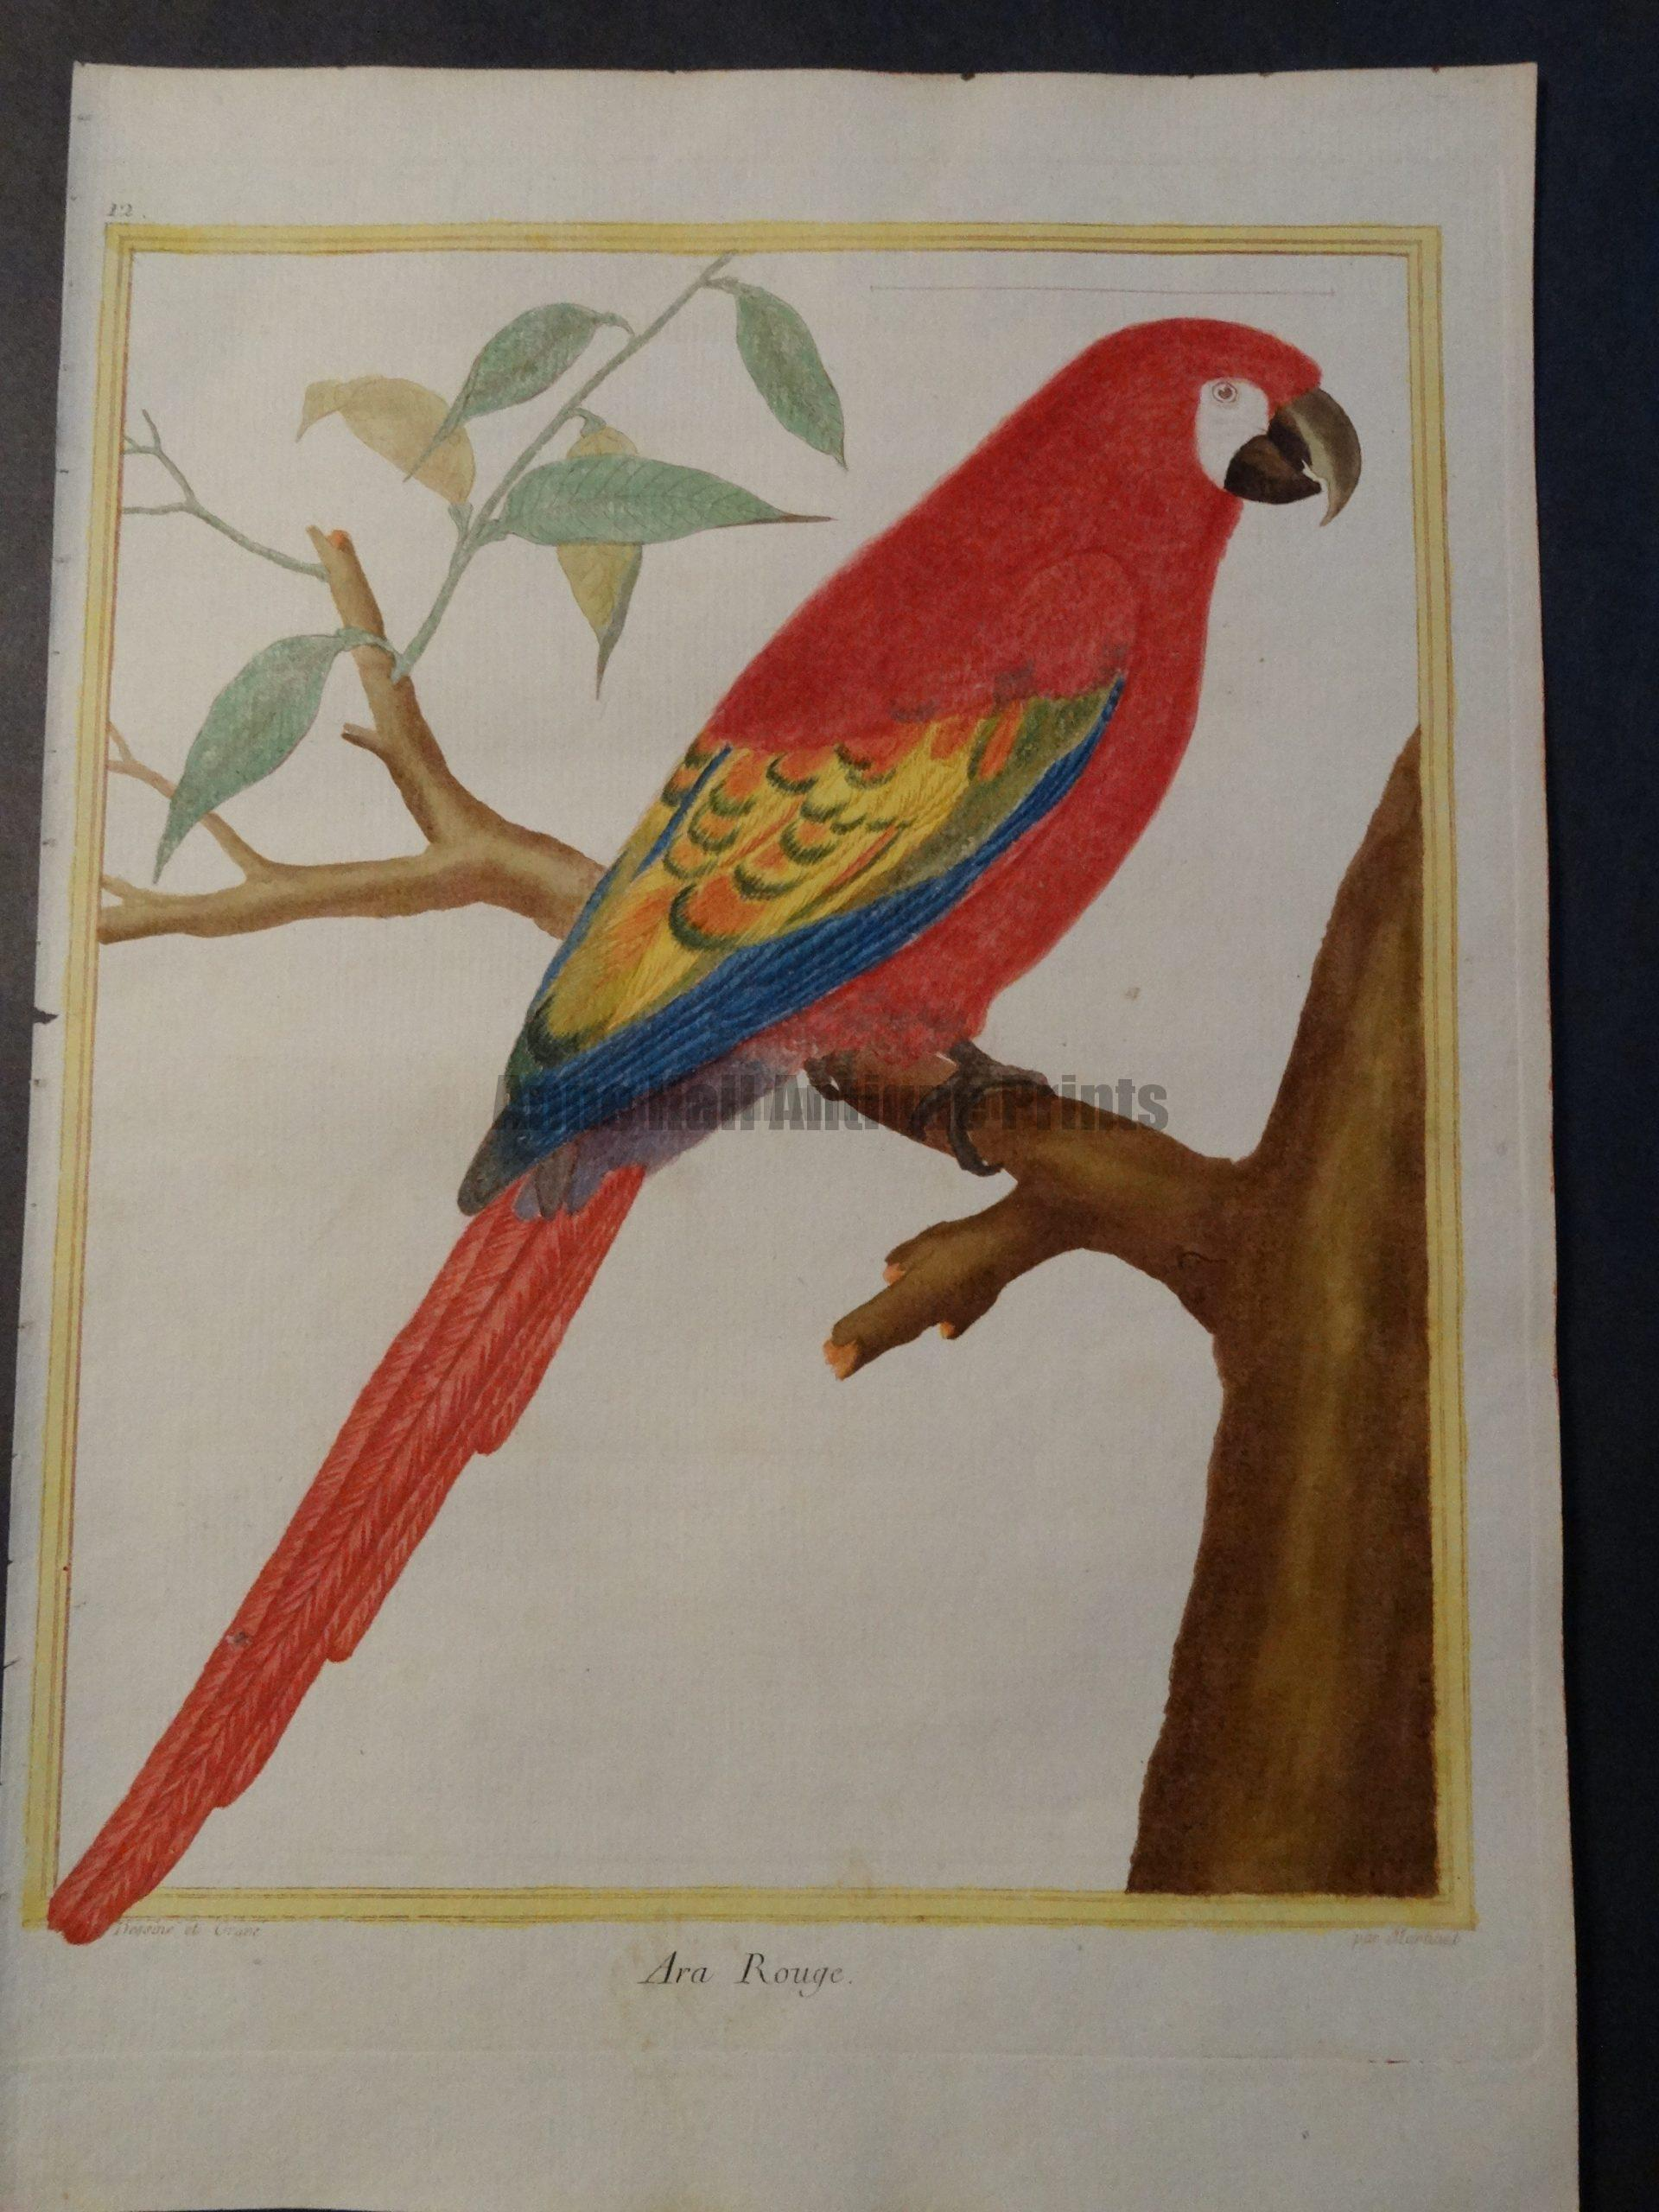 Parrot Martinet Ara Rouge 12. Coming from the rare French work on birds by Francois Martinet this Red or Scarlet Macaw is hand colored. Date 1770-1783 $950.